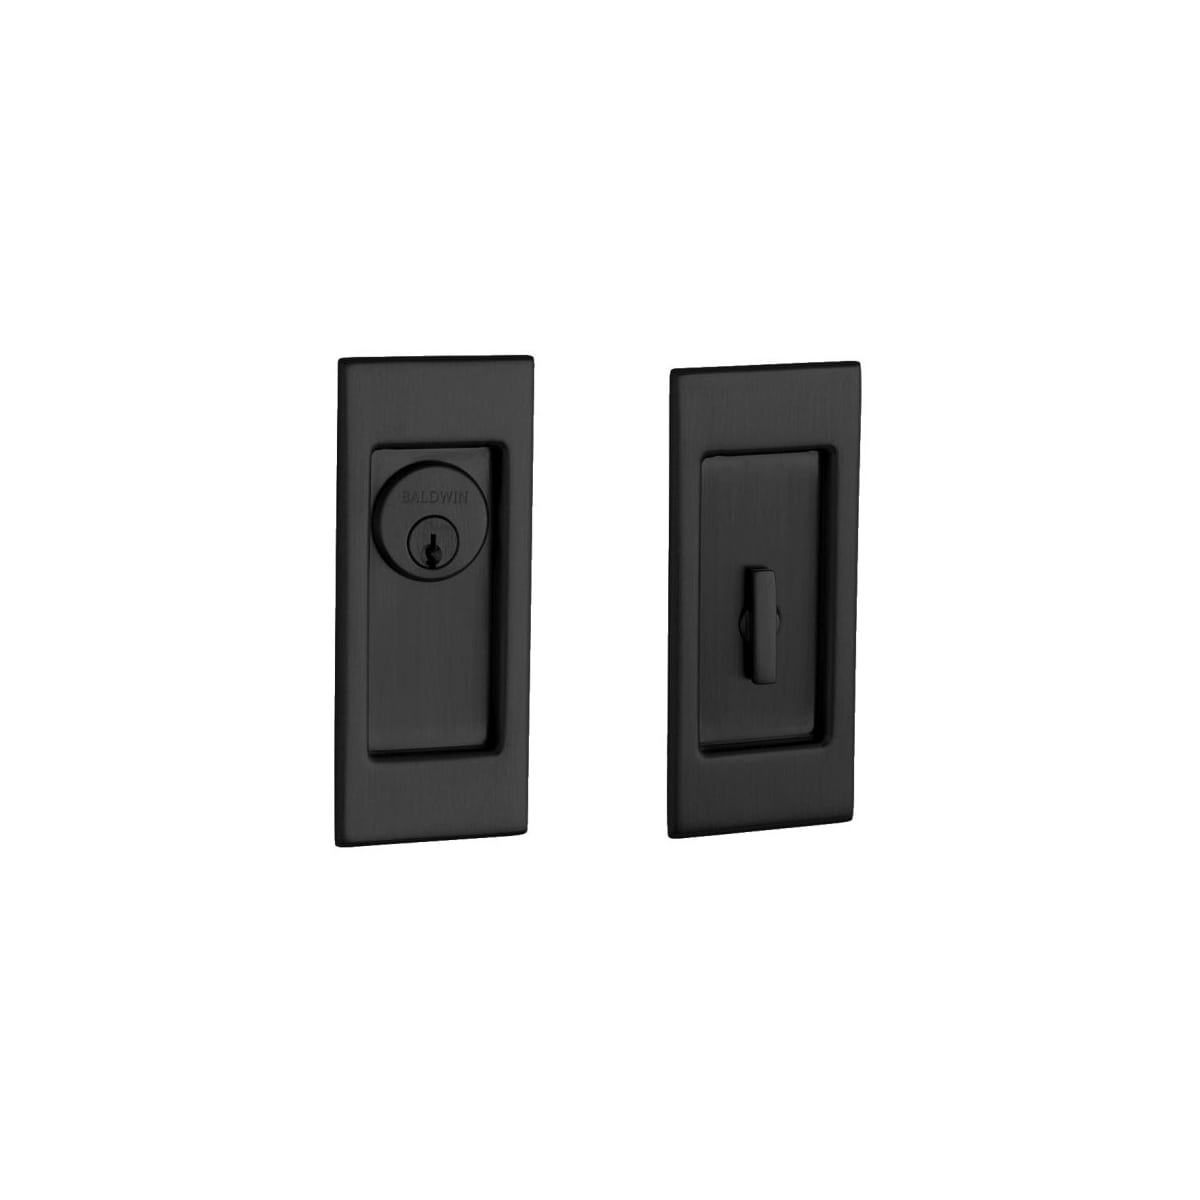 Baldwin Santa Monica Keyed Entry Pocket Door Set with Door Pull from the Estate Collection